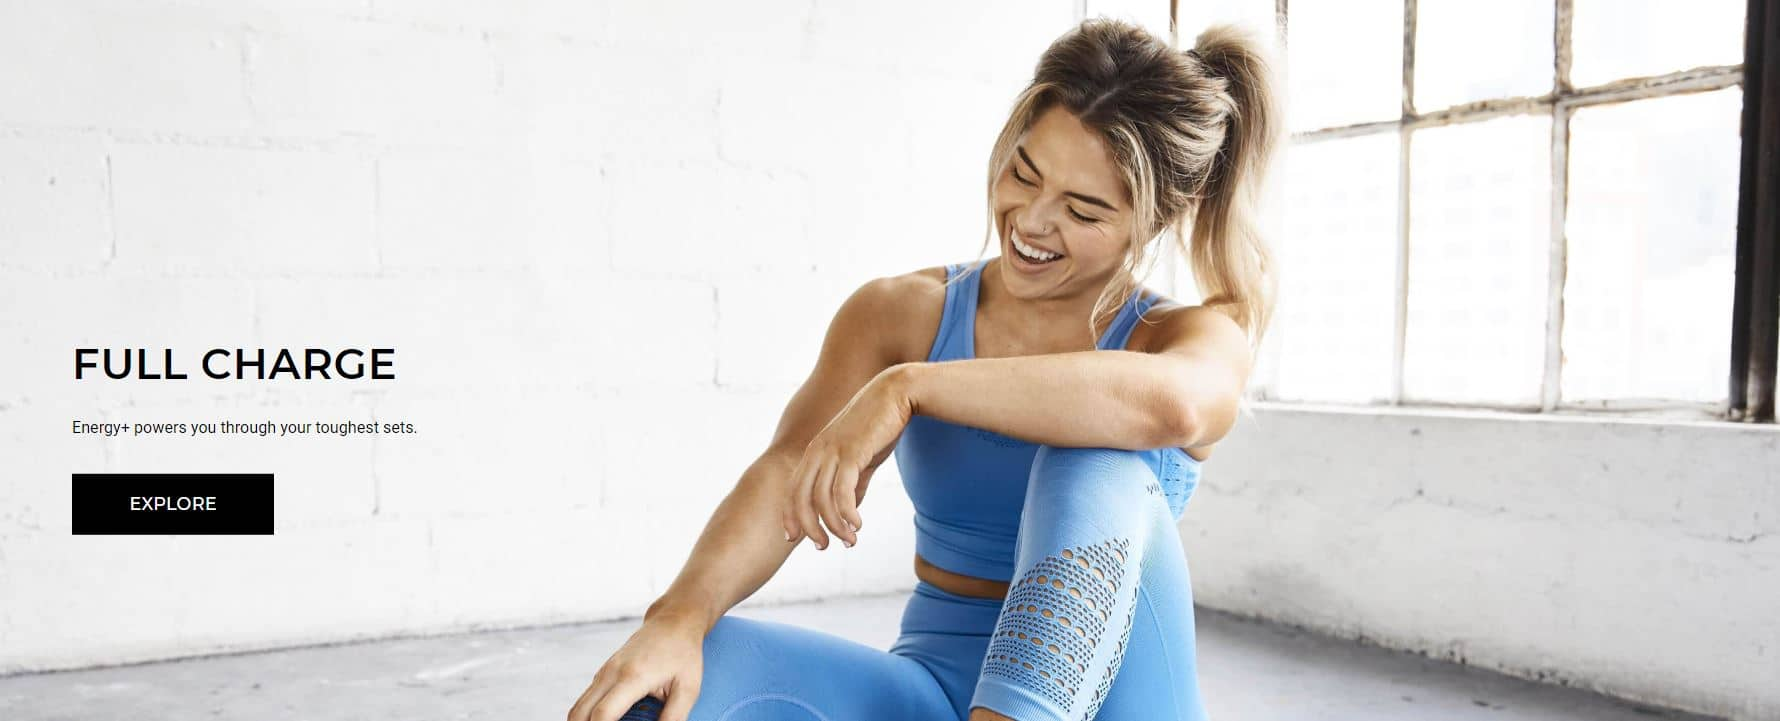 how to find classic style low price sale Top Fitness Apparel Ambassador Programs | BrandChamp